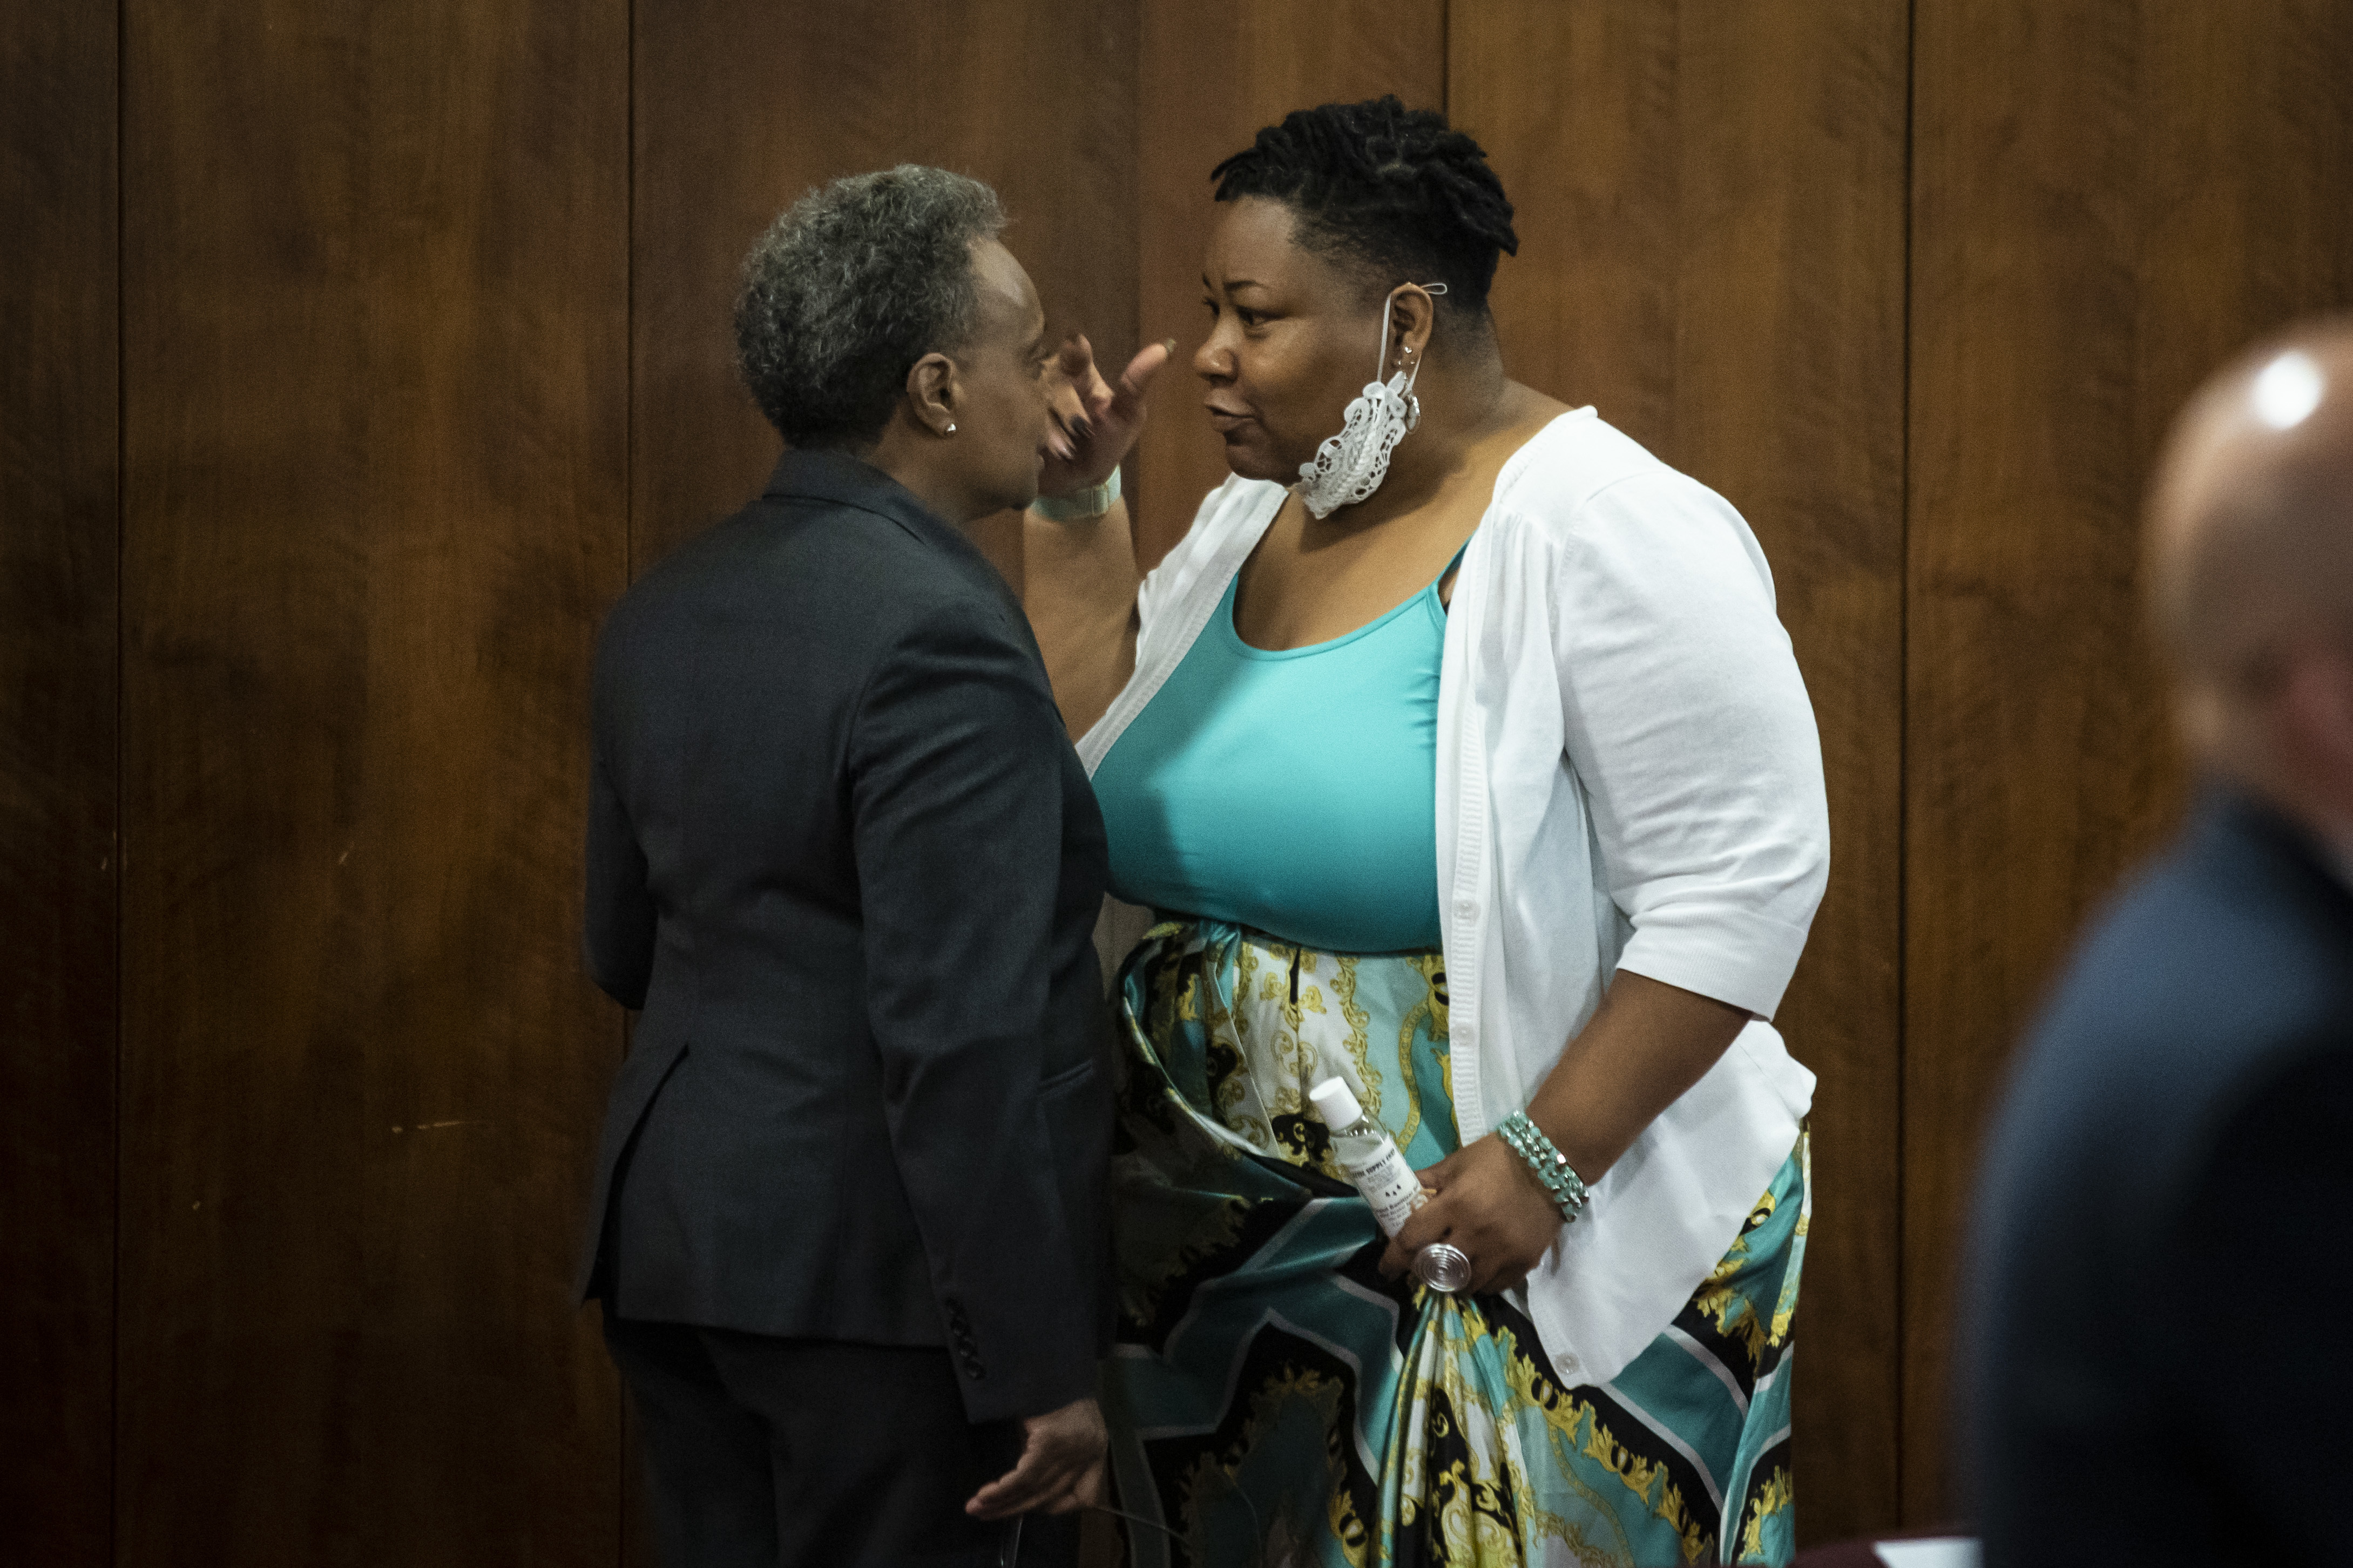 Mayor Lori Lightfoot and Ald. Jeanette Taylor (20th) in a heated discussion in the back of the Chicago City Council chambers on Wednesday before the Council meeting abruptly adjourned.